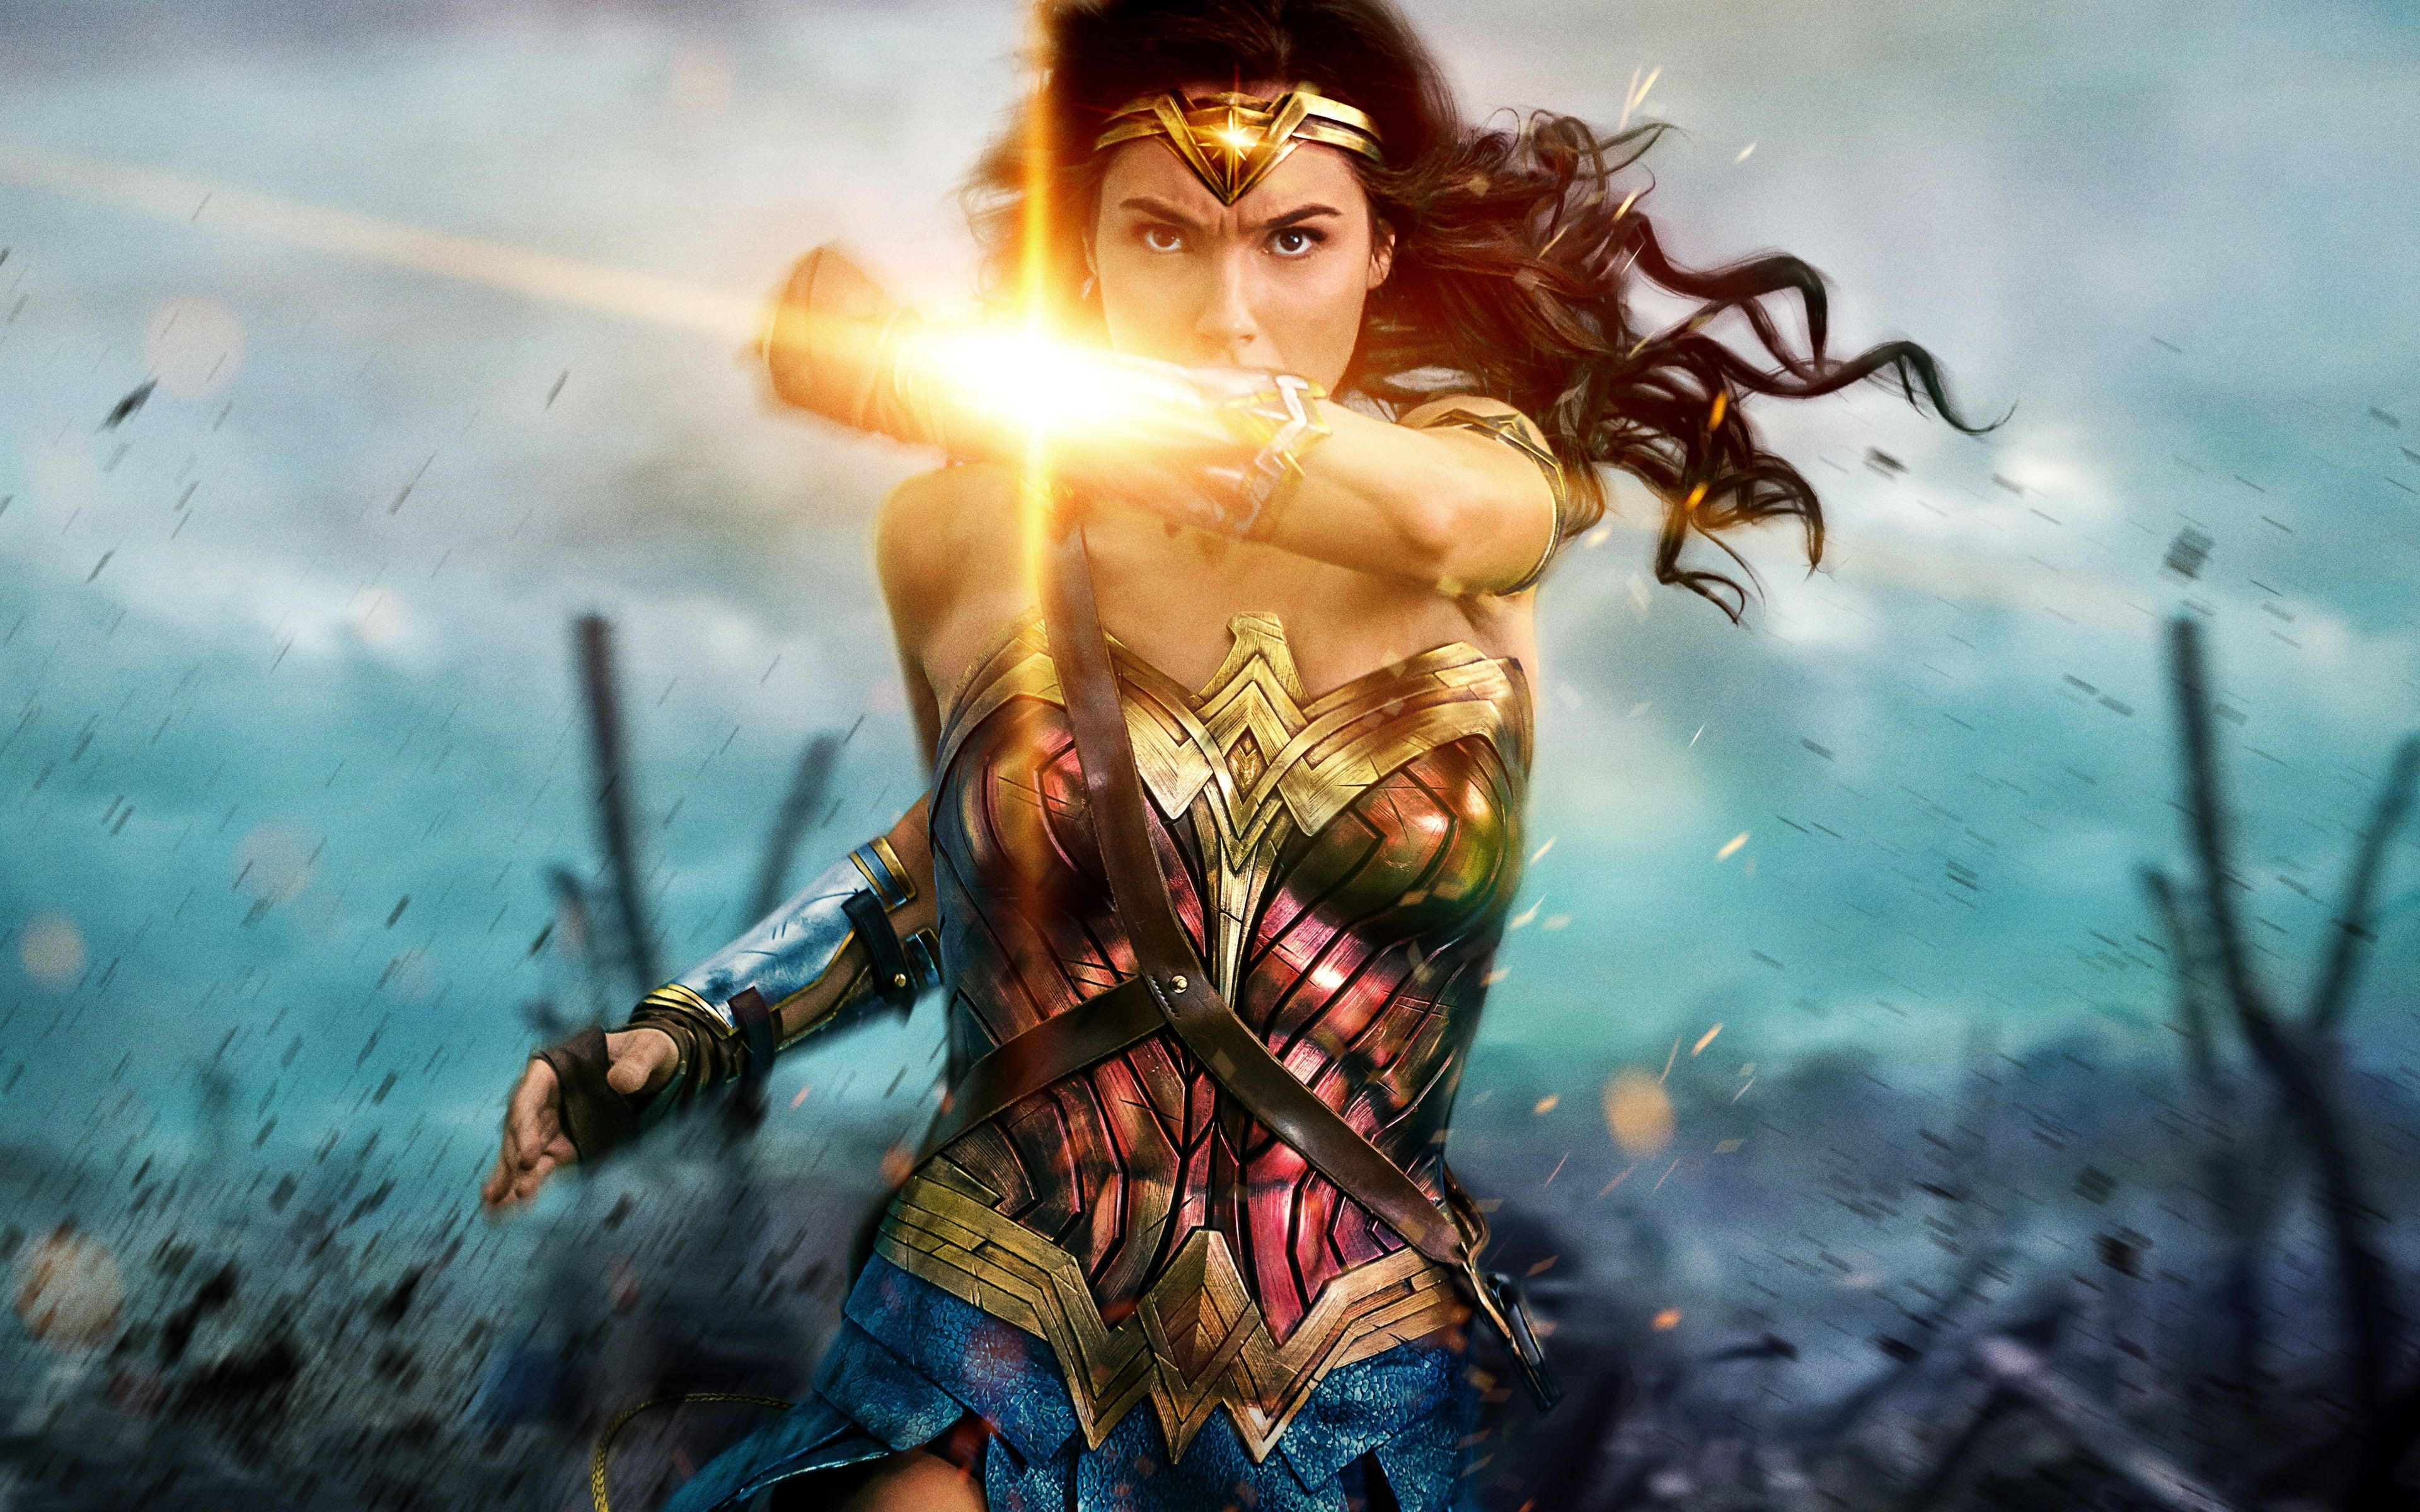 Wonder Woman Gal Gadot Movies 4k Wallpaper Hdwallpaper Desktop In 2020 Wonder Woman Comic Movies Girl Film